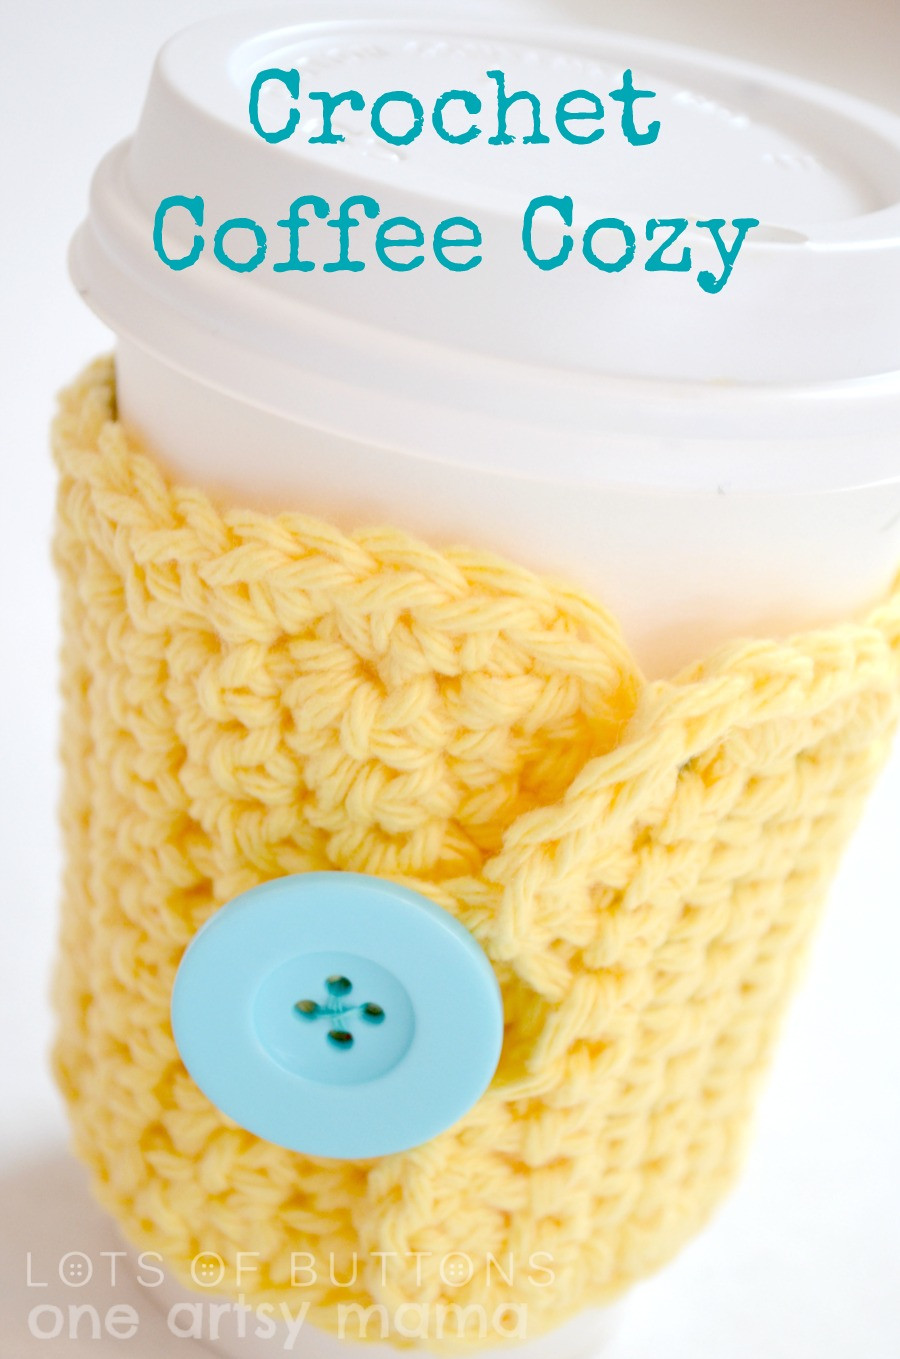 Crochet Coffee Cup Cozy Lovely Crochet Coffee Cozy Amy Latta Creations Of Crochet Coffee Cup Cozy Elegant Basketweave Cup Cozy Crochet Pattern with